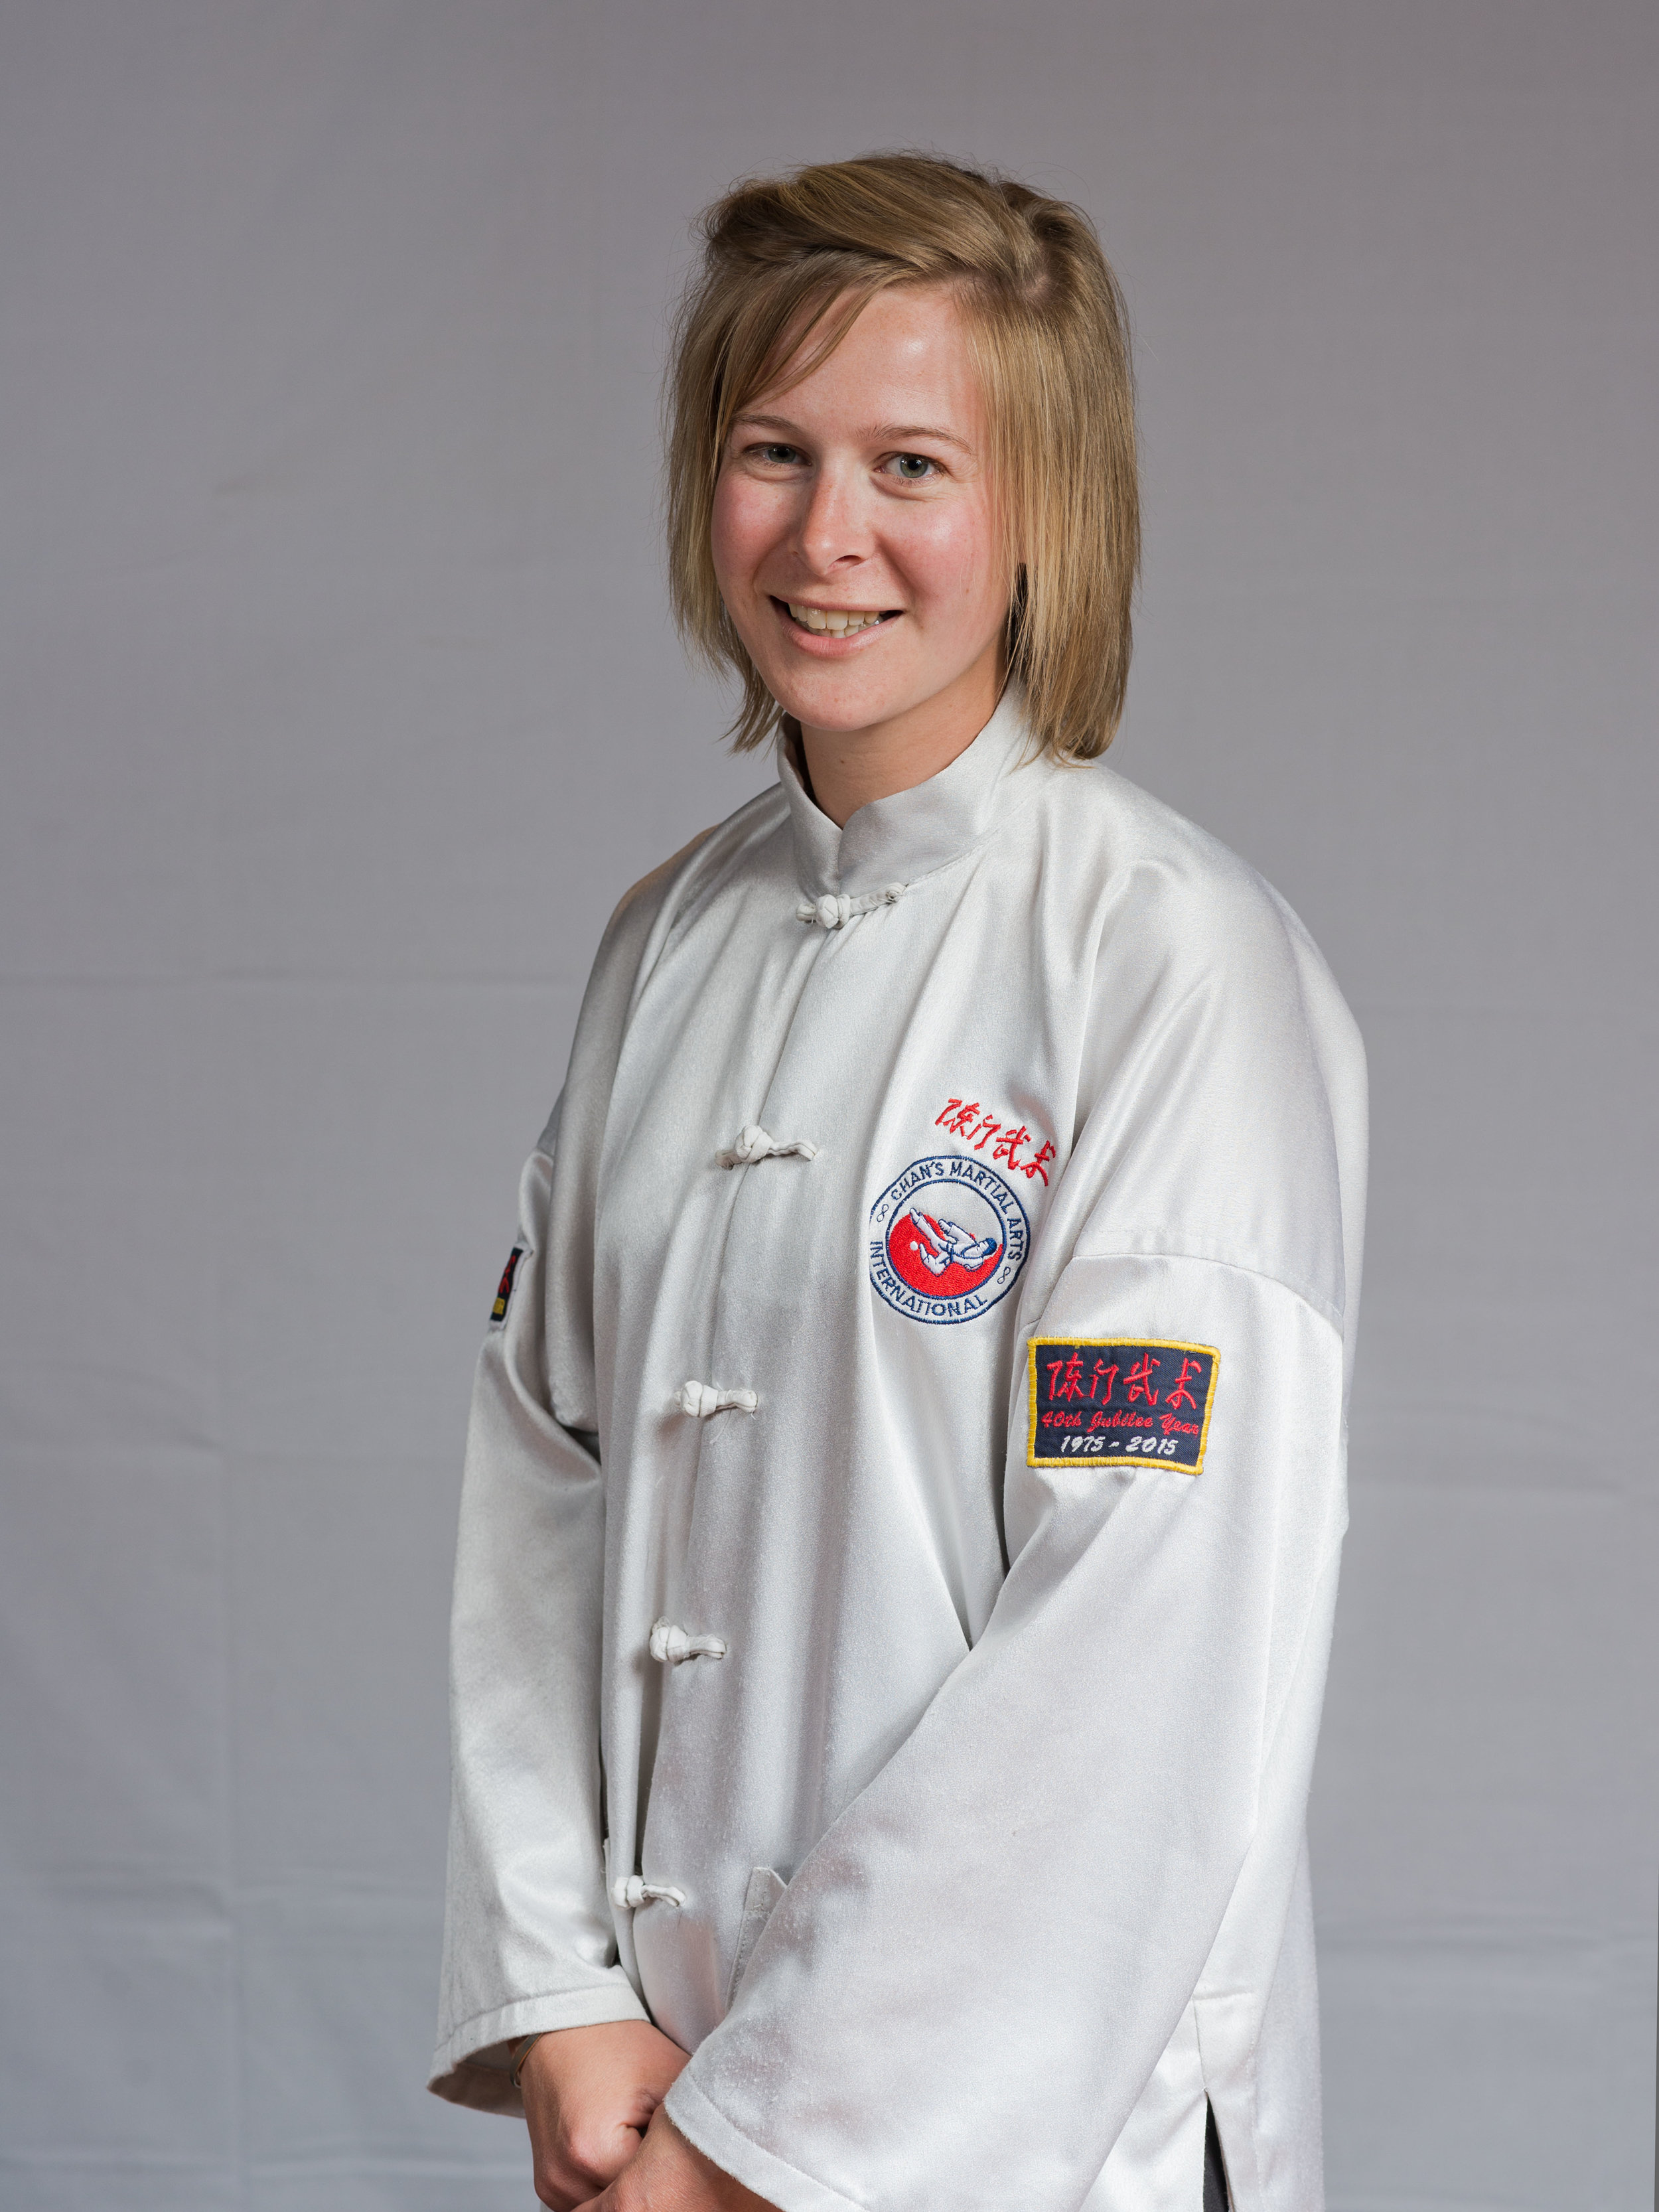 Chief Instructor - Alicia Harrison Laoshi